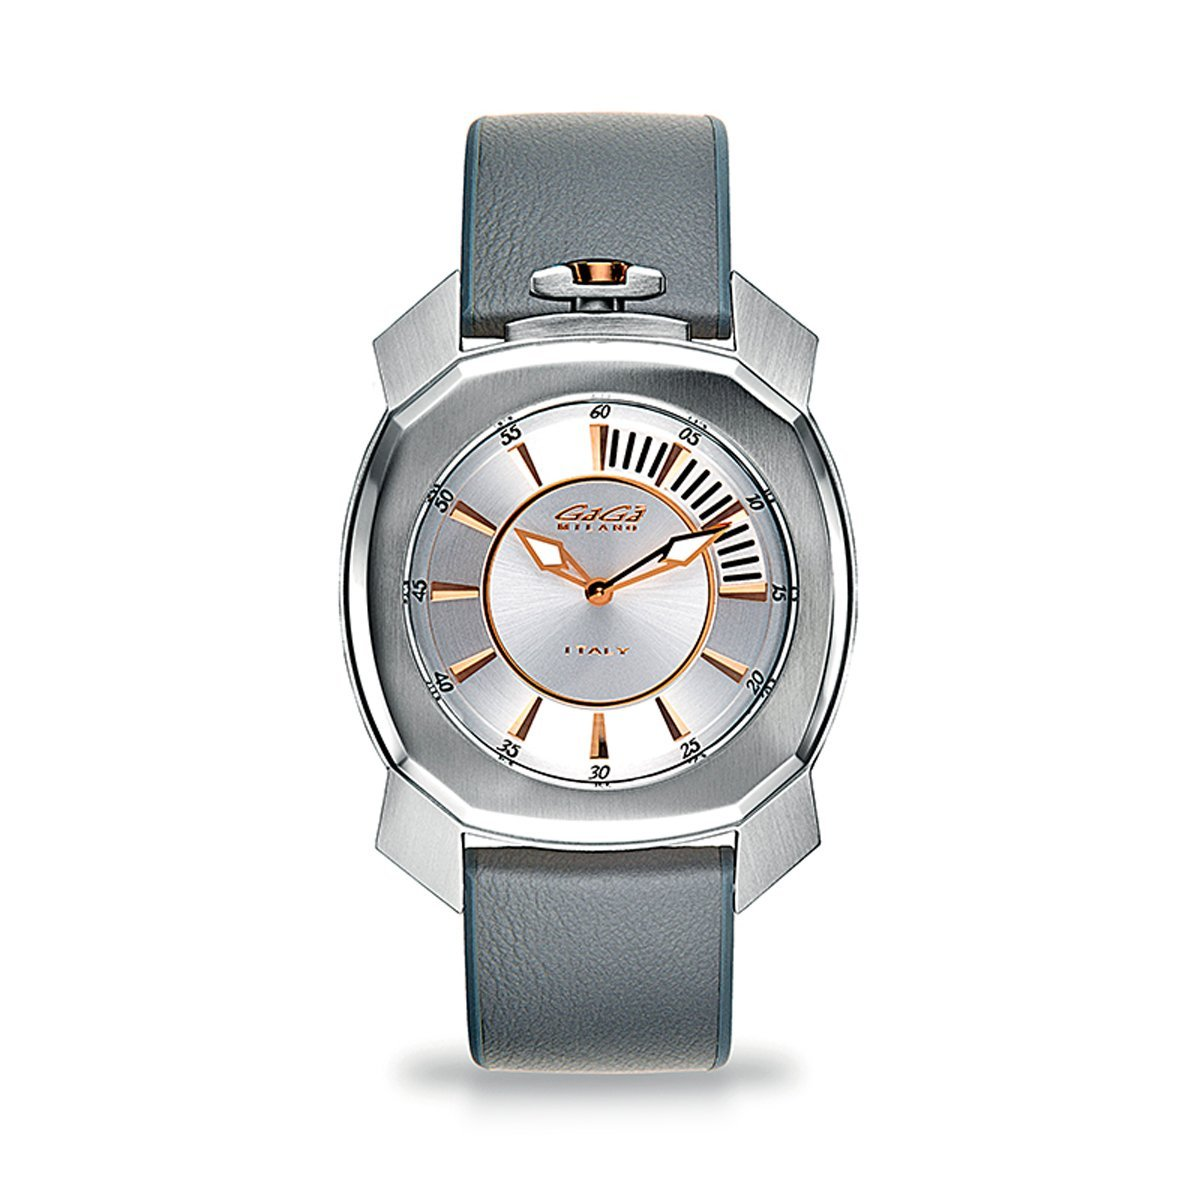 Gaga Milano Frame_One Silver - Watches & Crystals